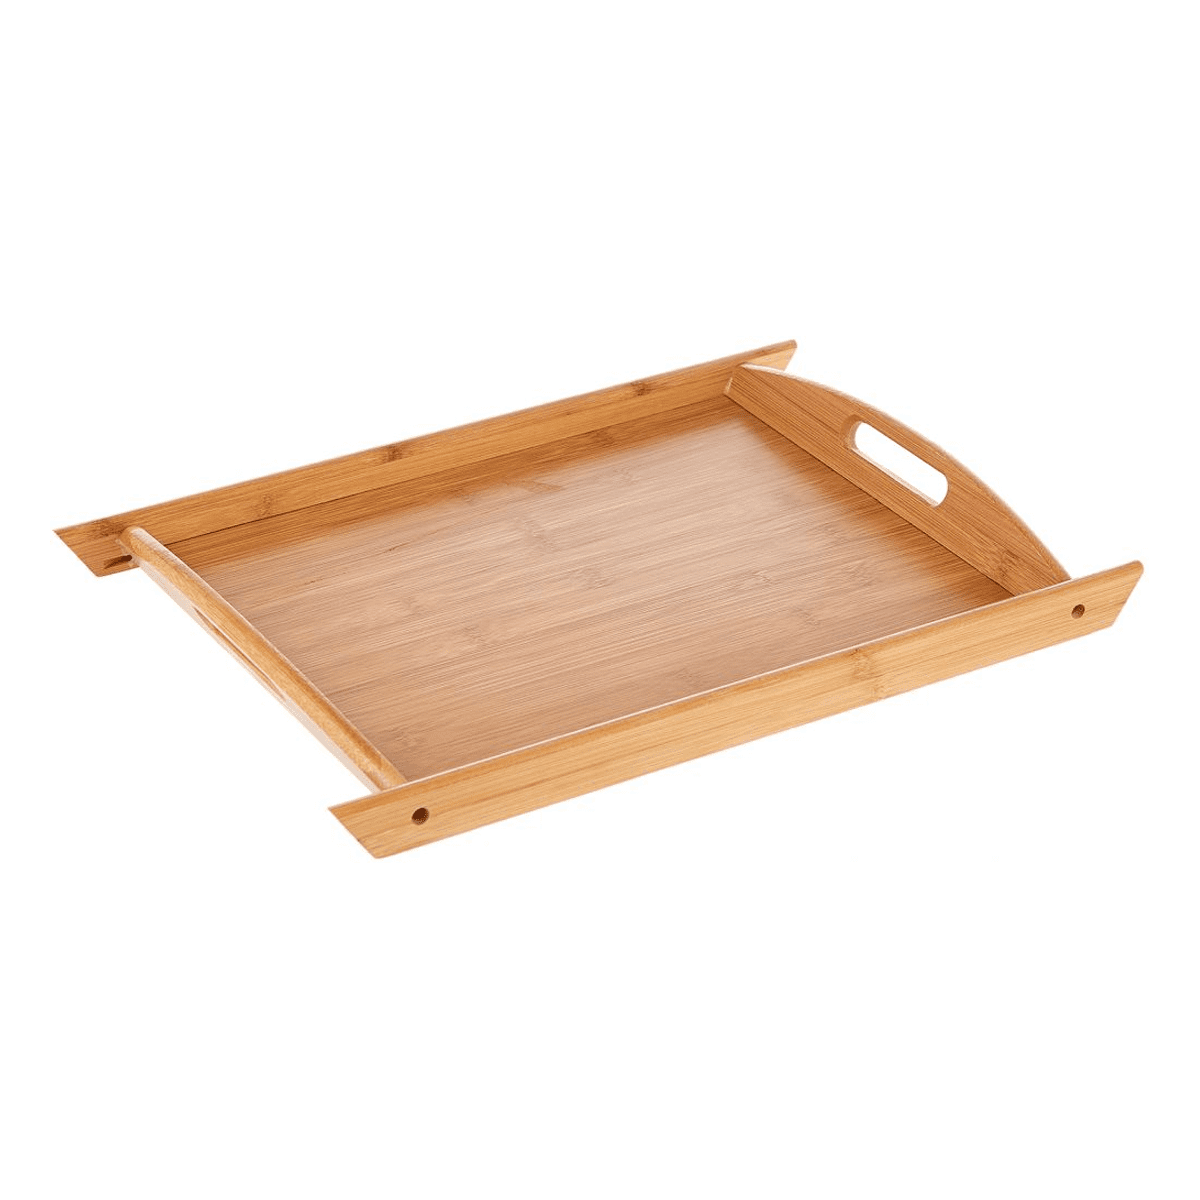 Liying Wooden New Serving Trays